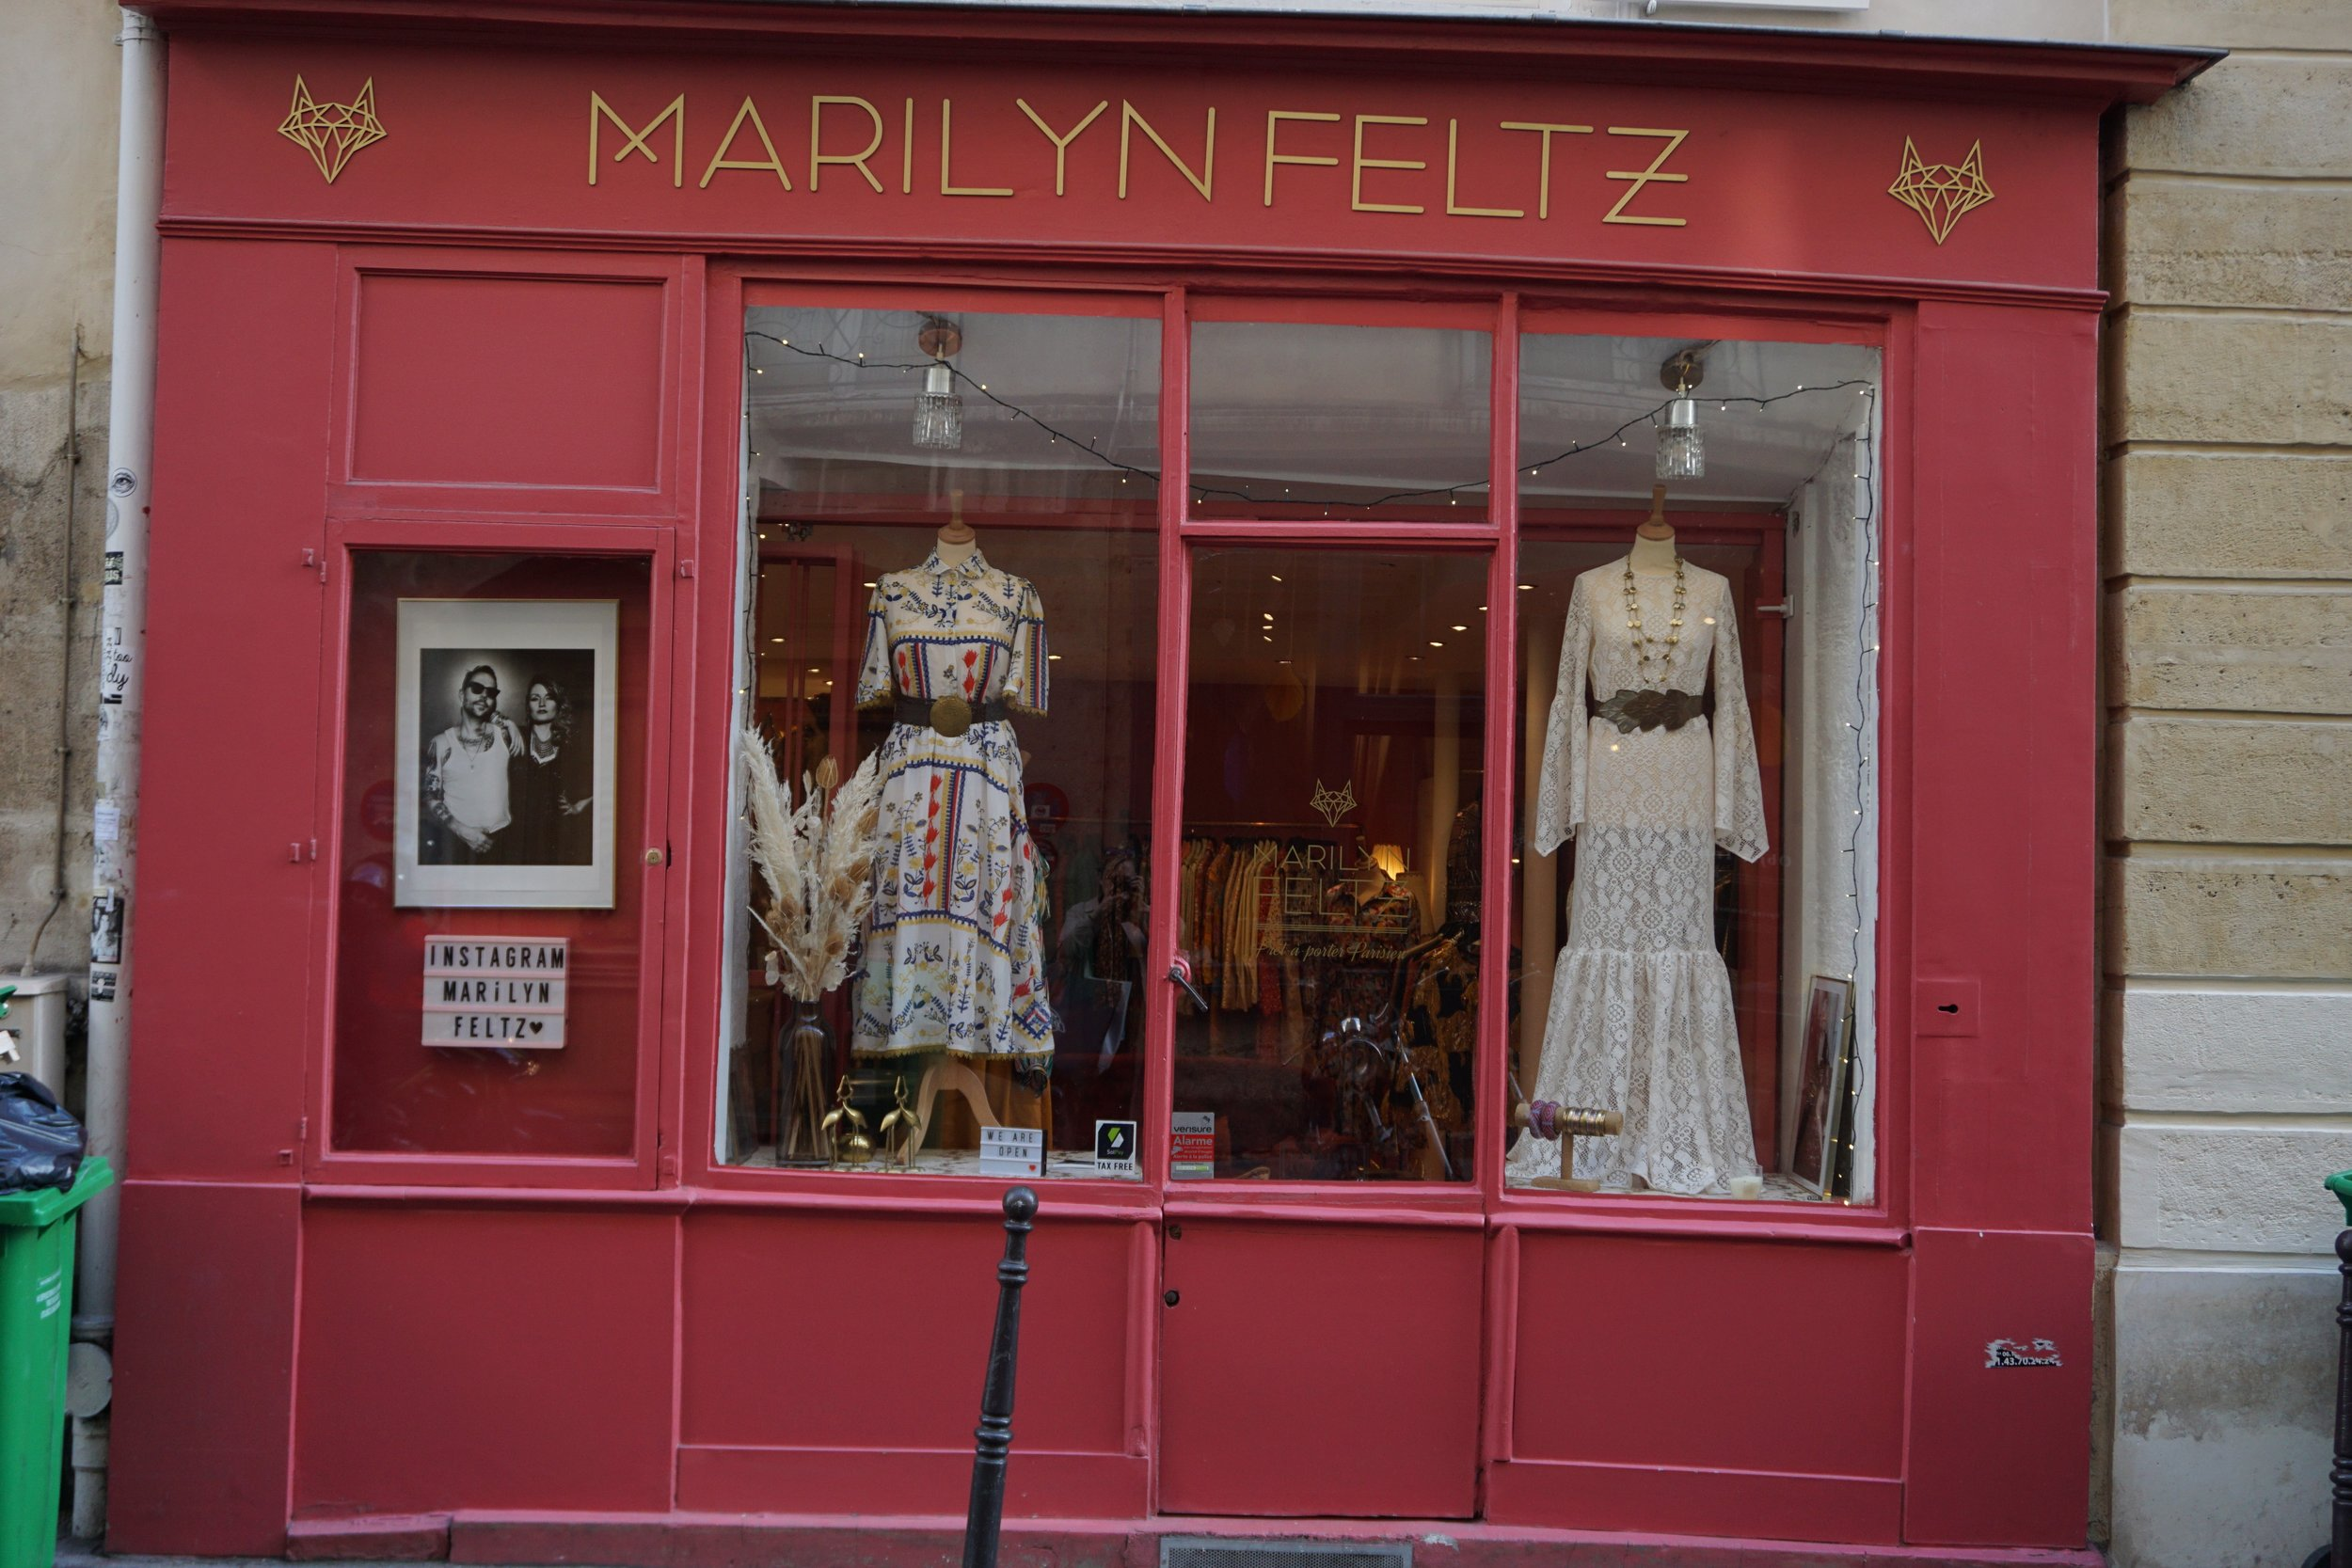 Walking in to the store  Marilyn Feltz  is a must if you enjoy fashion.